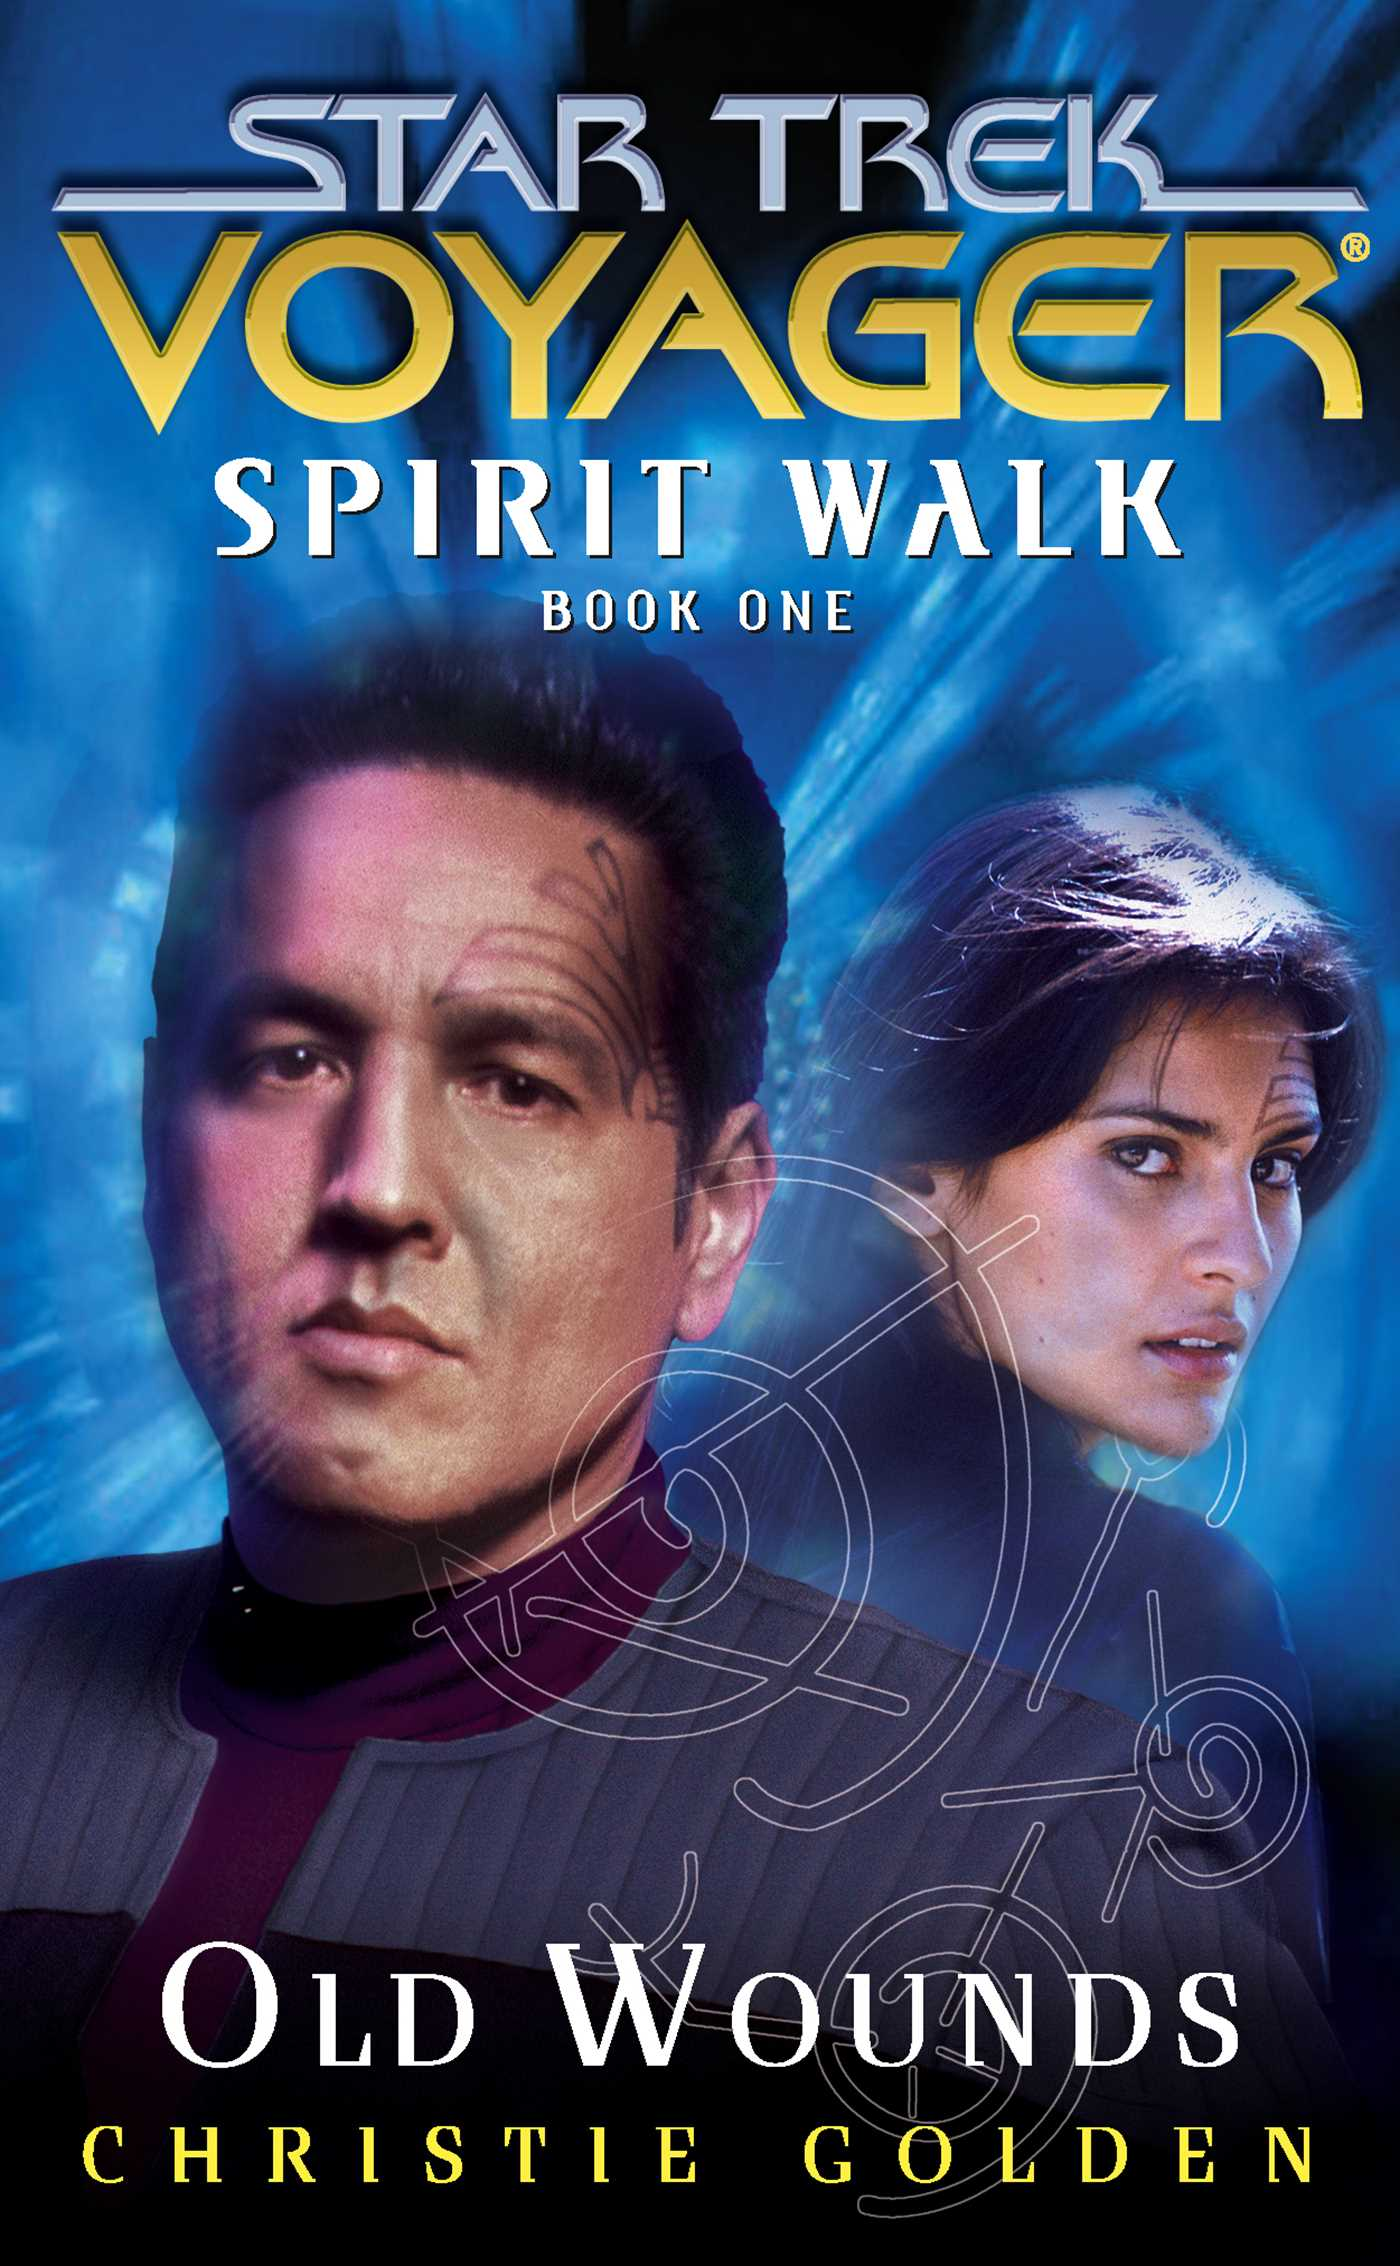 Star trek voyager spirit walk 1 old wounds 9781416500056 hr